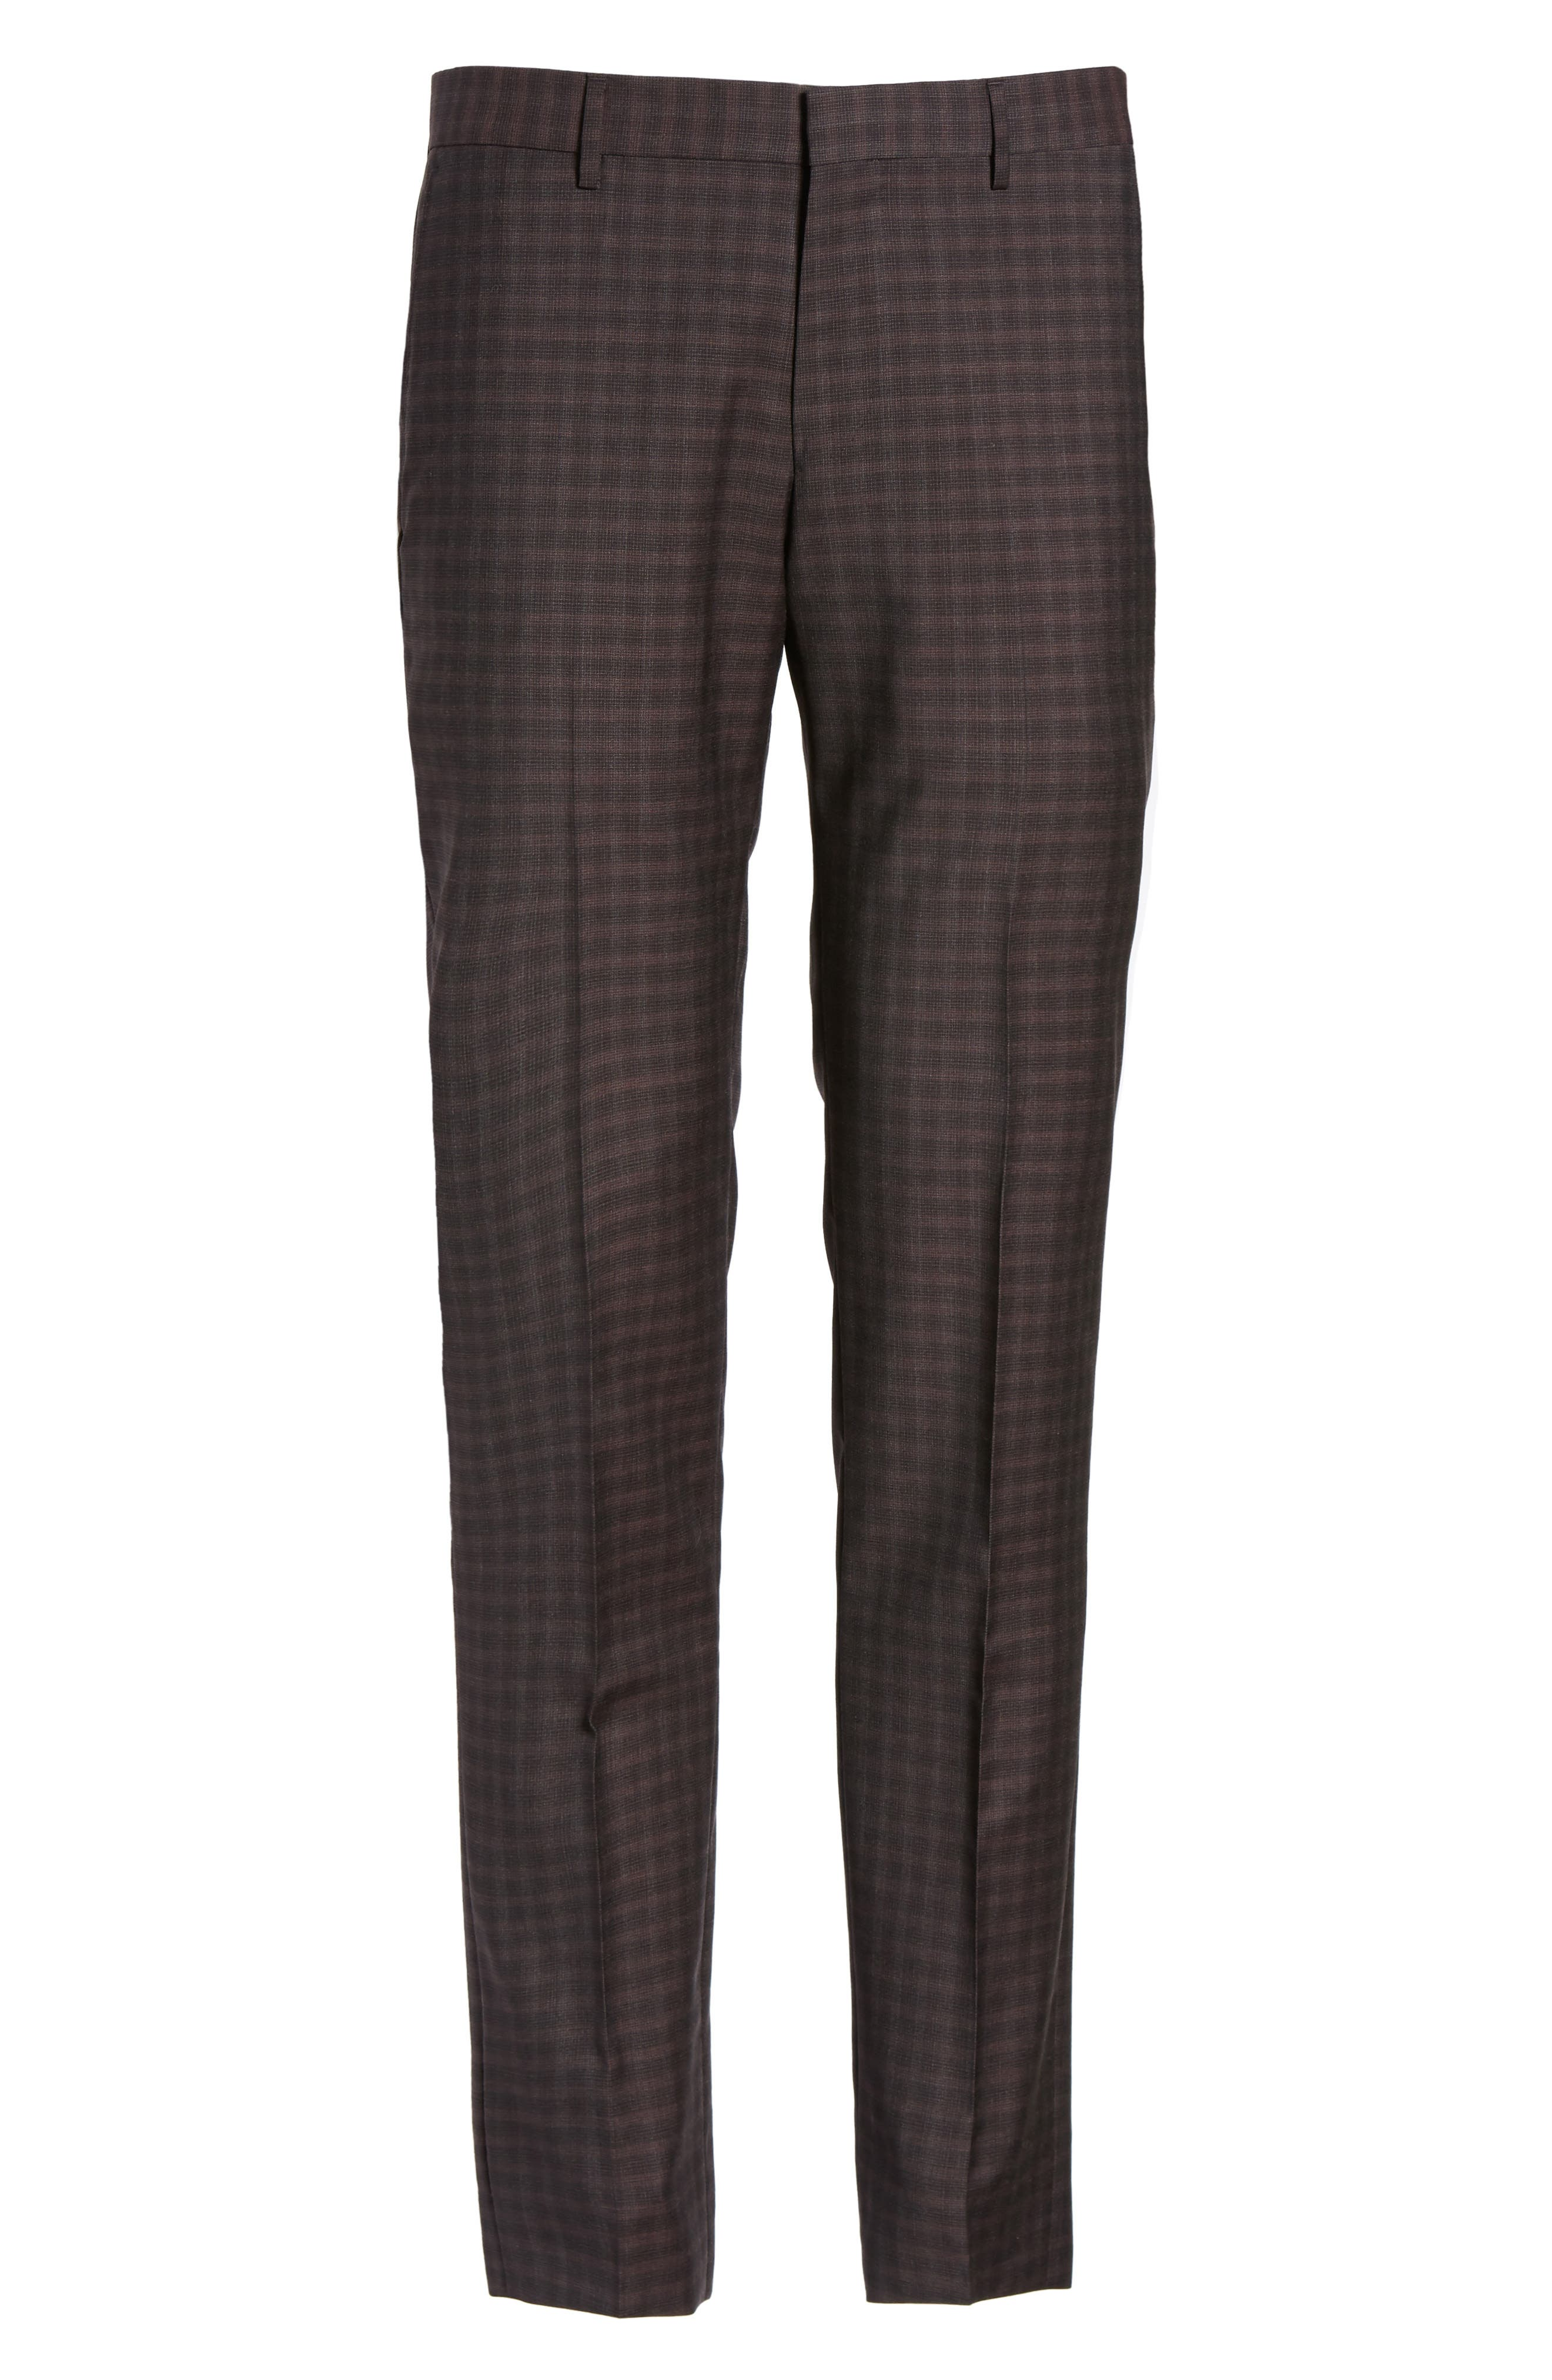 Benso Regular Fit Wool Trousers,                             Alternate thumbnail 6, color,                             606